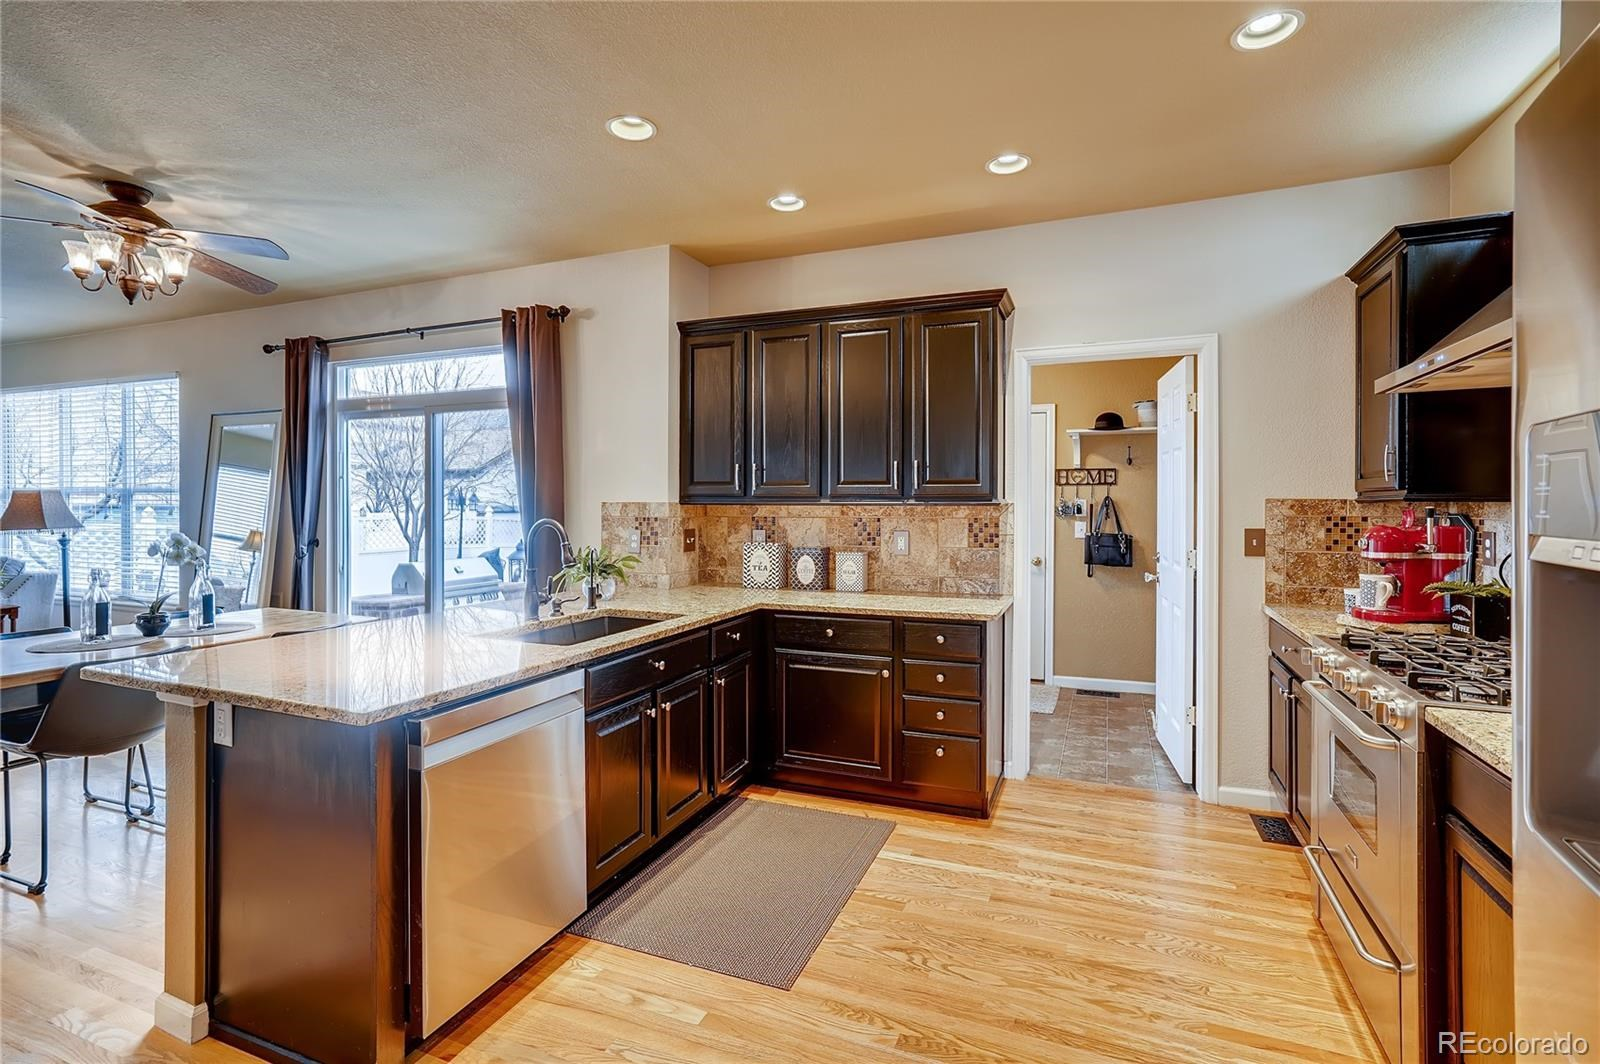 MLS# 8020804 - 19 - 8642 Five Parks Drive, Arvada, CO 80005